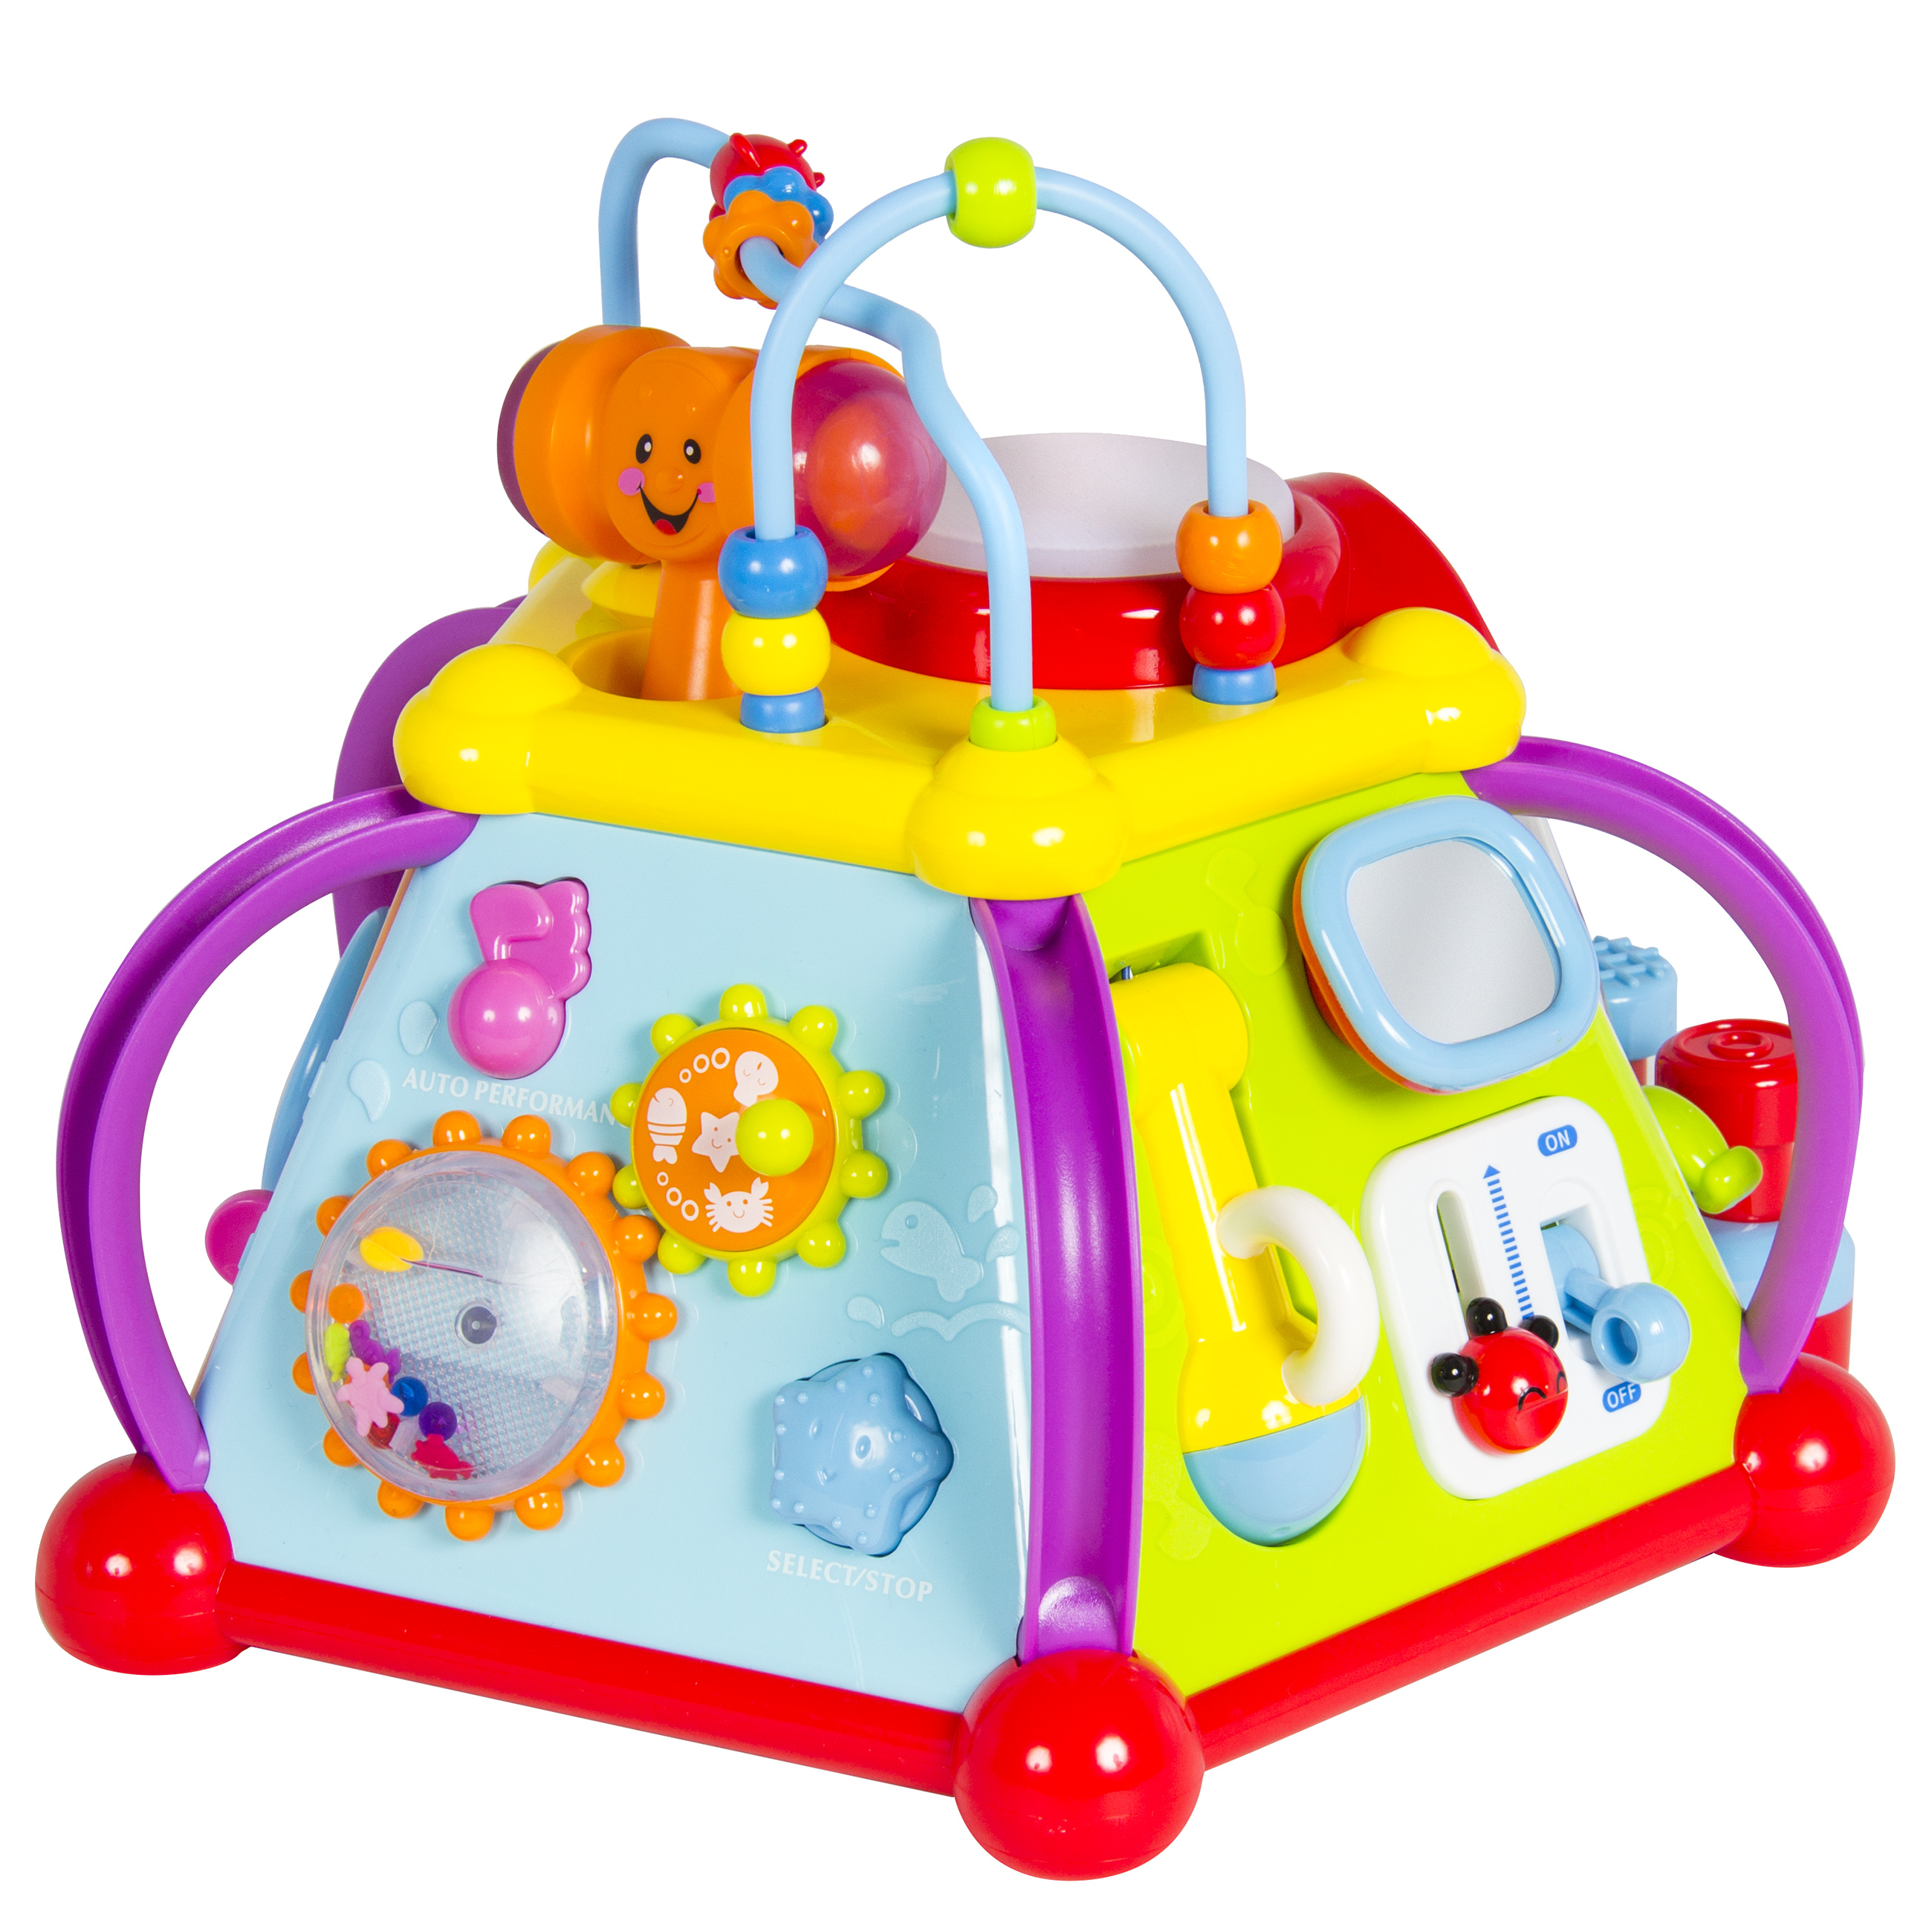 Baby Toy Musical Activity Cube Play Center with Lights,15 ...